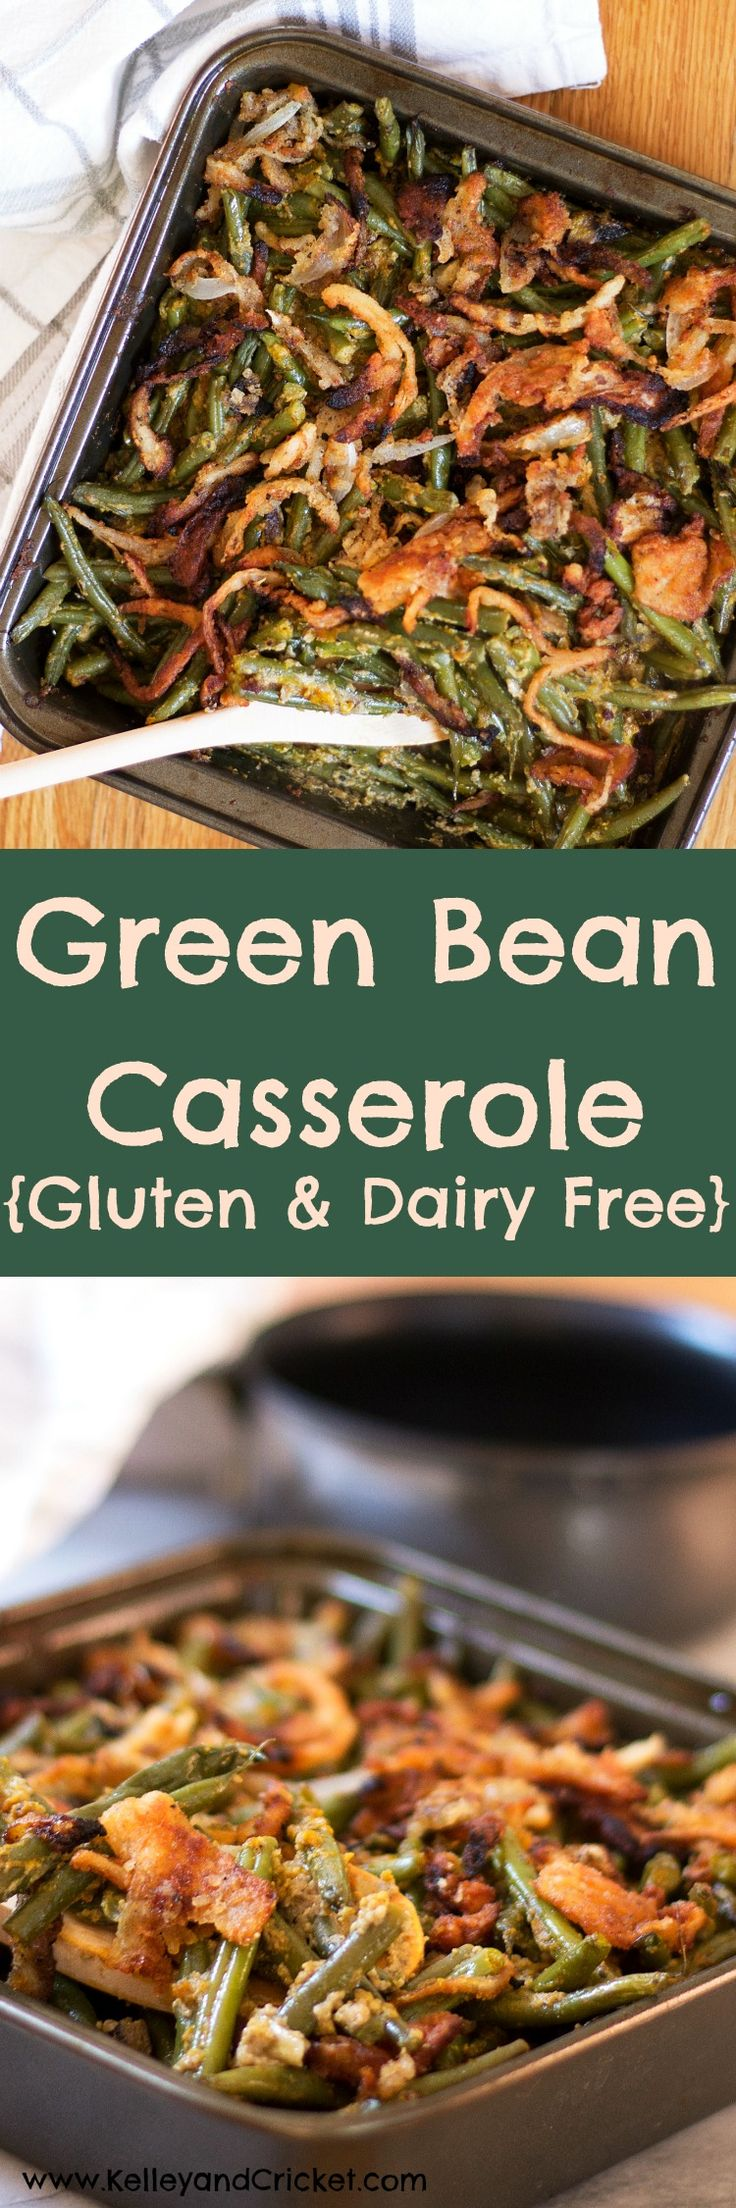 "This Green Bean Casserole is so creamy and crunchy (thanks to the homemade French Fried Onions) and better than the original! You'll never guess it's gluten-free, grain-free, dairy-free, and paleo! (Even though recipe says ""canned goods; cream of mushroom soup"" the soup is actually HOME-MADE & DAIRY-FREE."